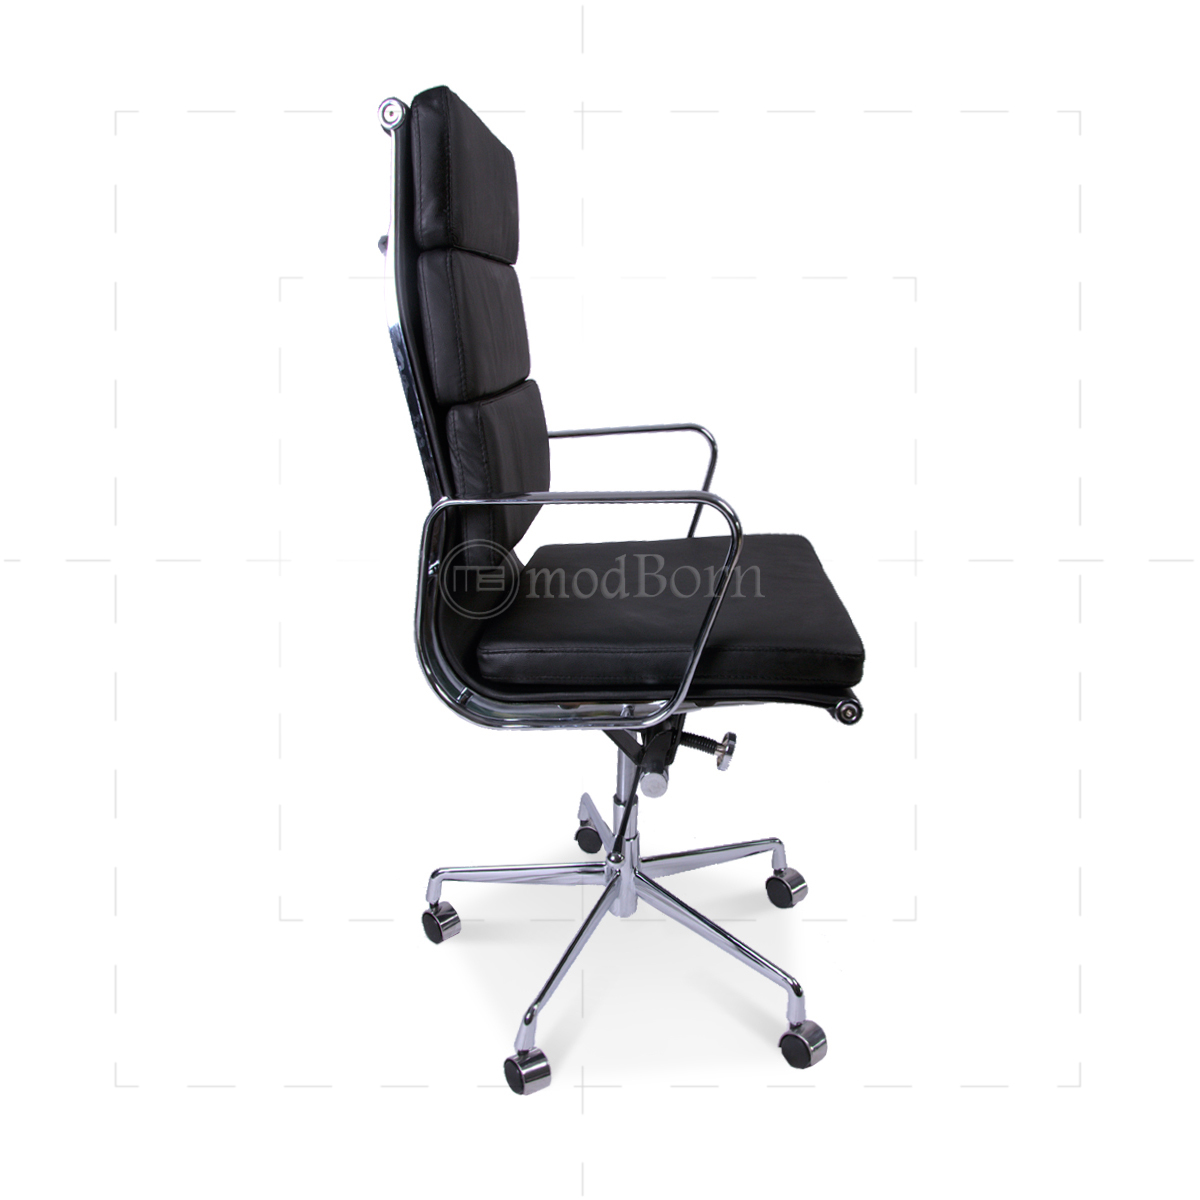 eames office chair replica. EA219 Eames Style Office Chair High Back Soft Pad Black Leather - Replica